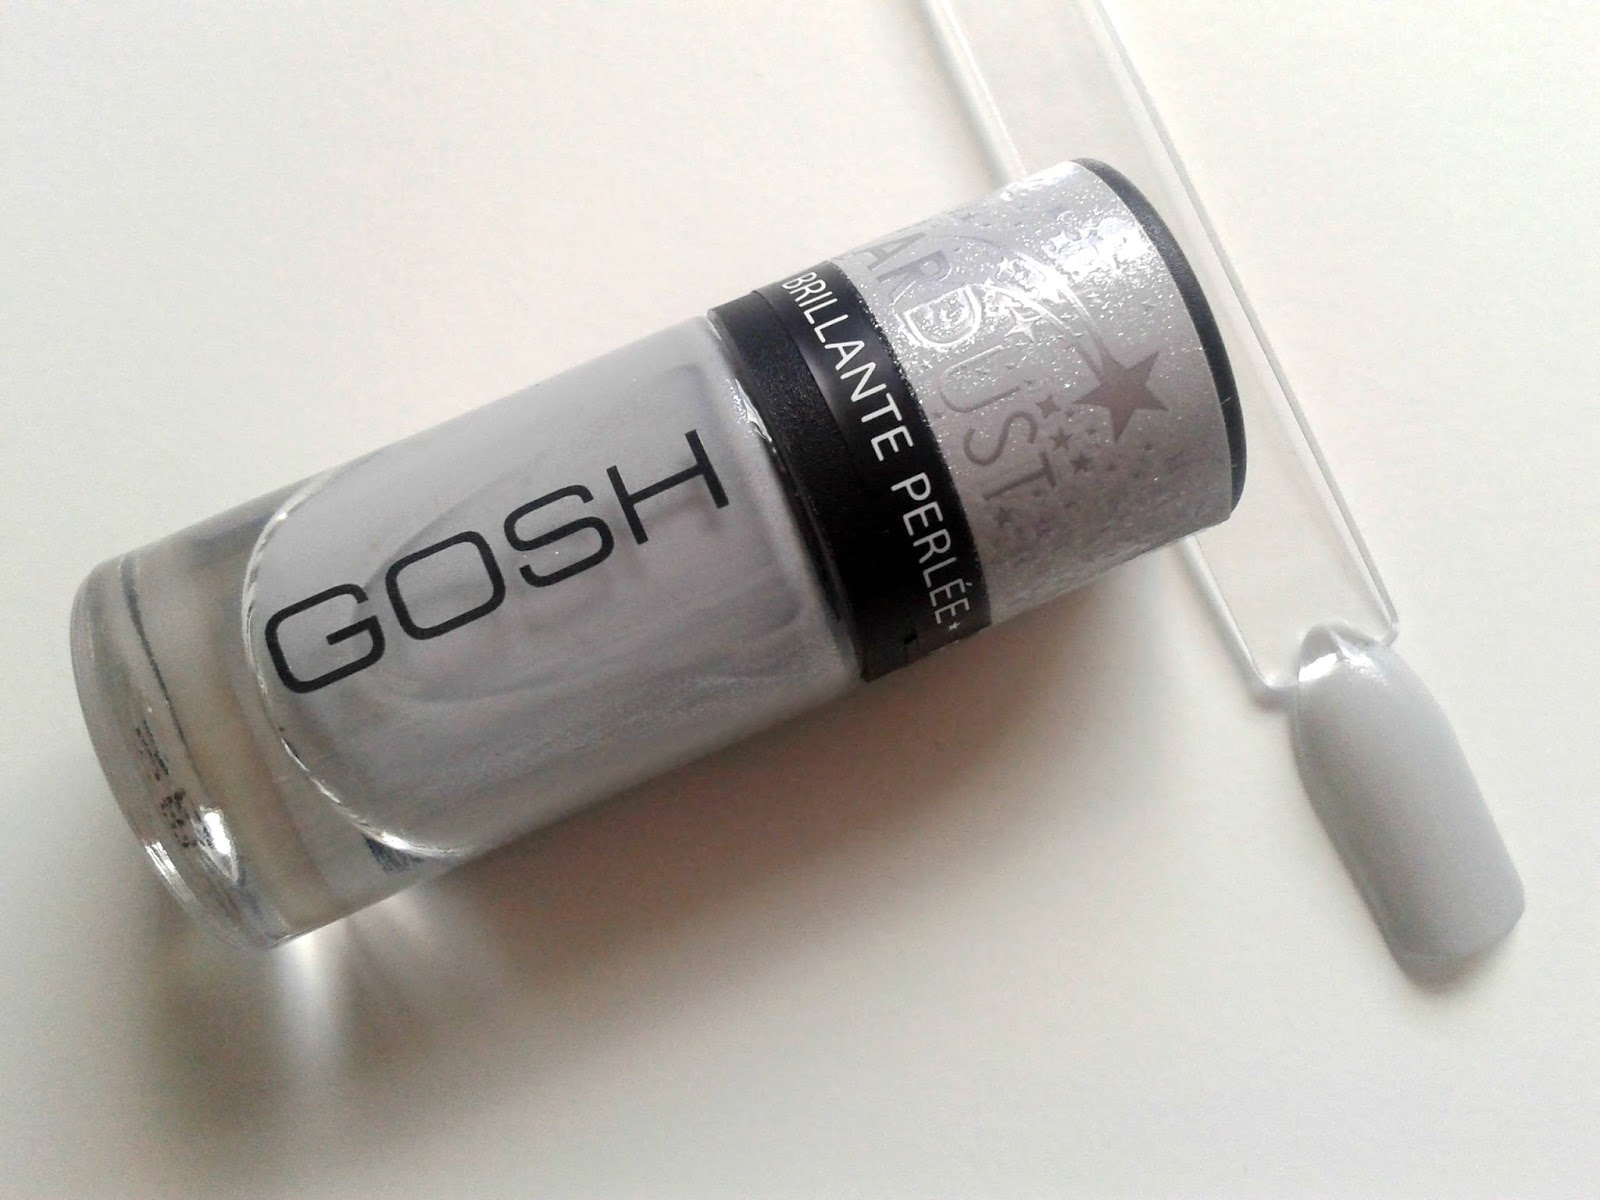 GOSH Nail Polish in Milky Way (629) Beauty Review Swatch Stardust Collection